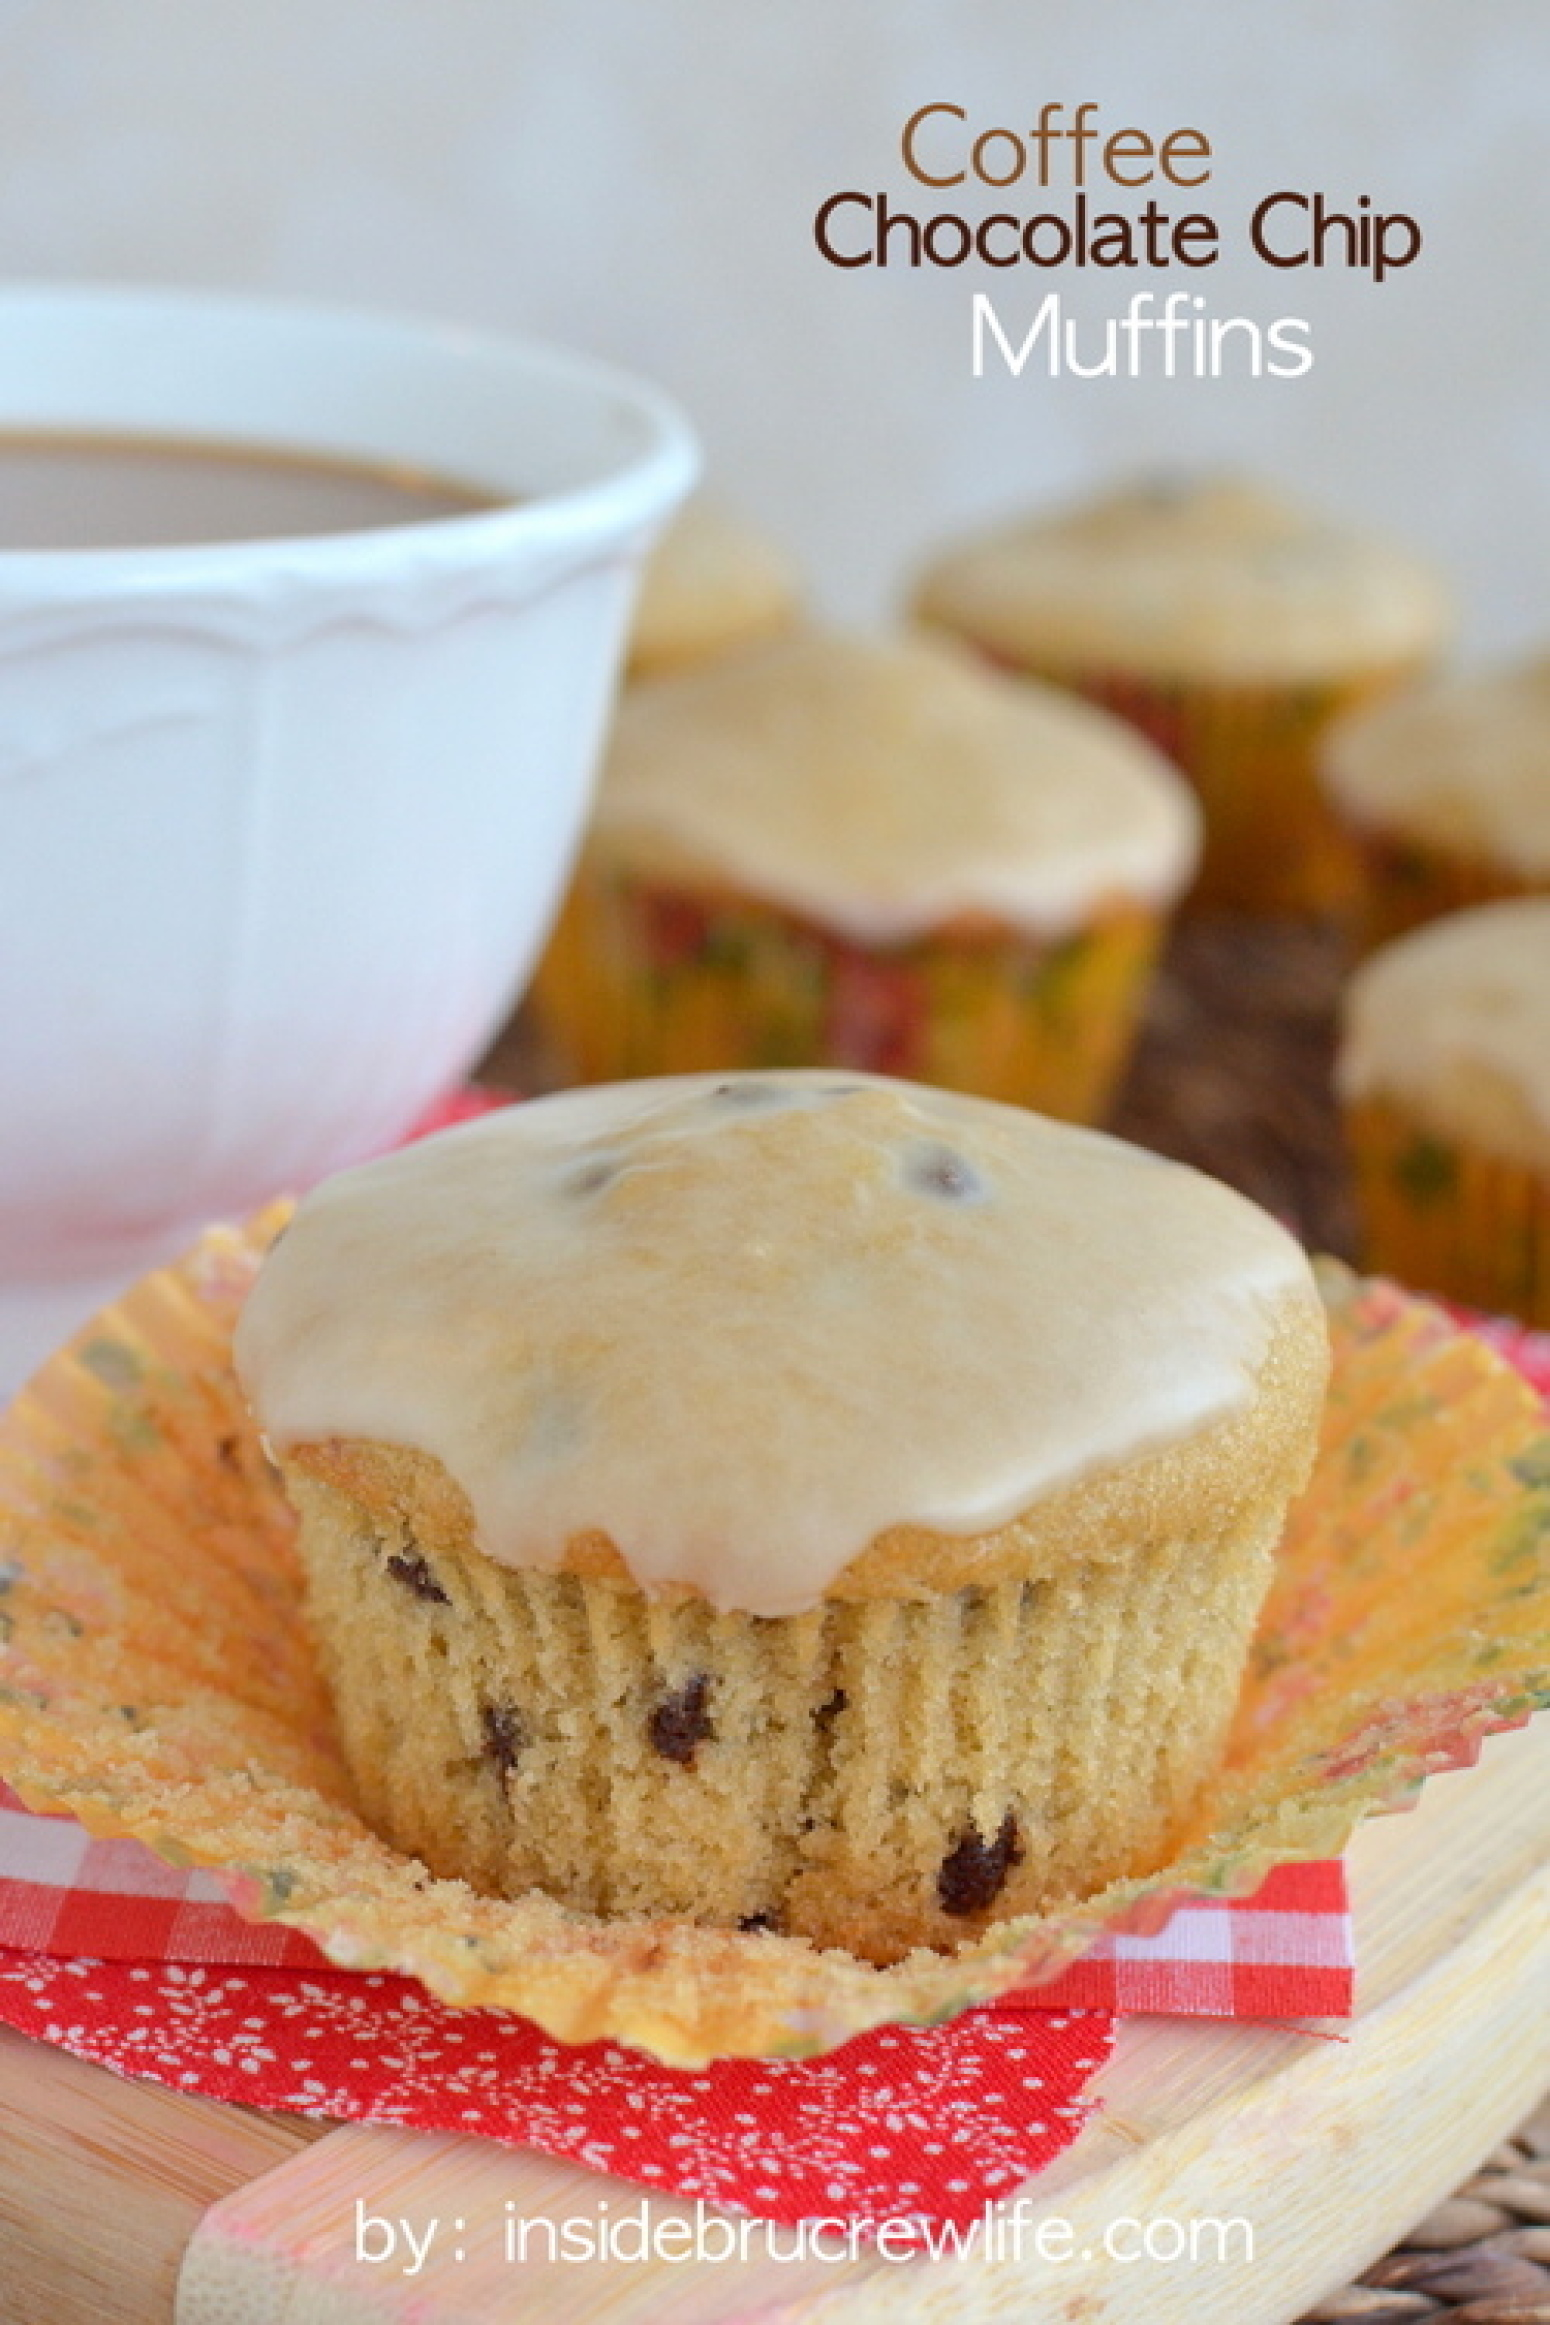 Coffee Chocolate Chip Muffins Recipe | Just A Pinch Recipes